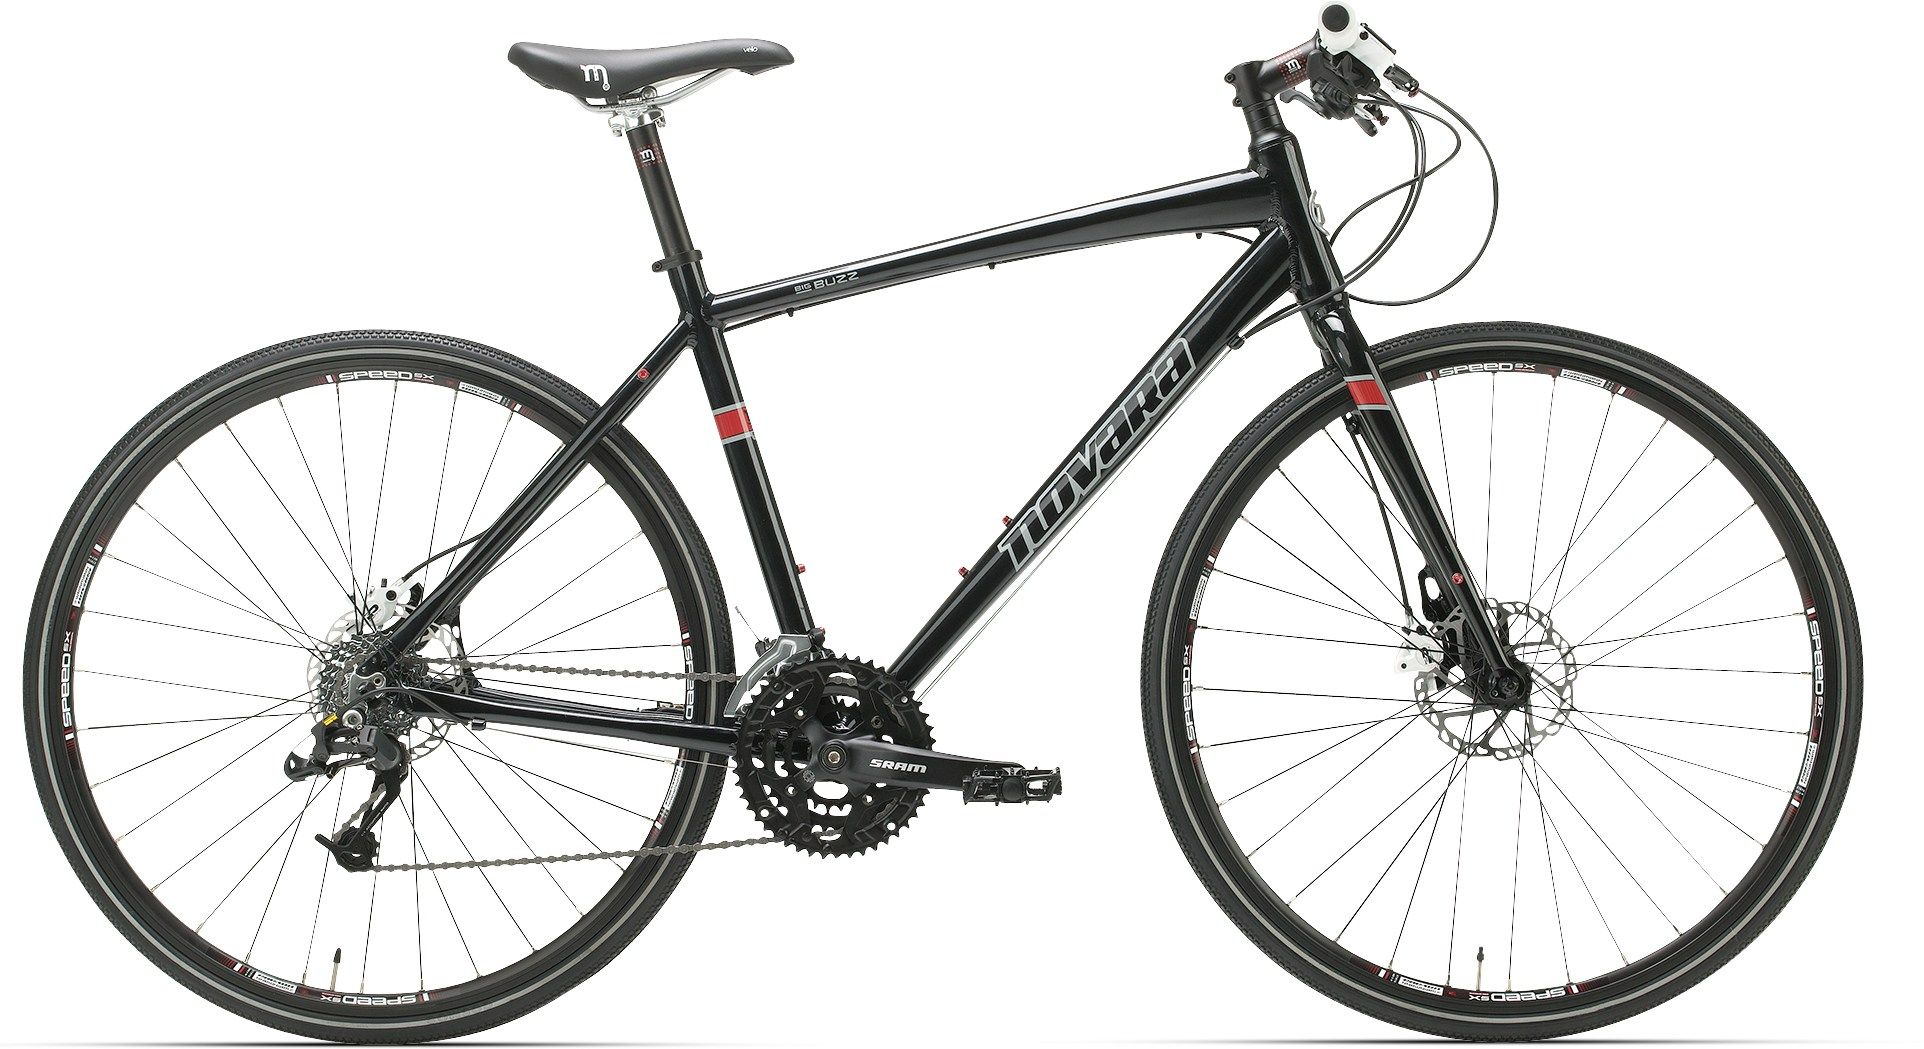 Our Versatile And Agile Novara Big Buzz Features Powerful Hydraulic Disc Brakes 27 Capable